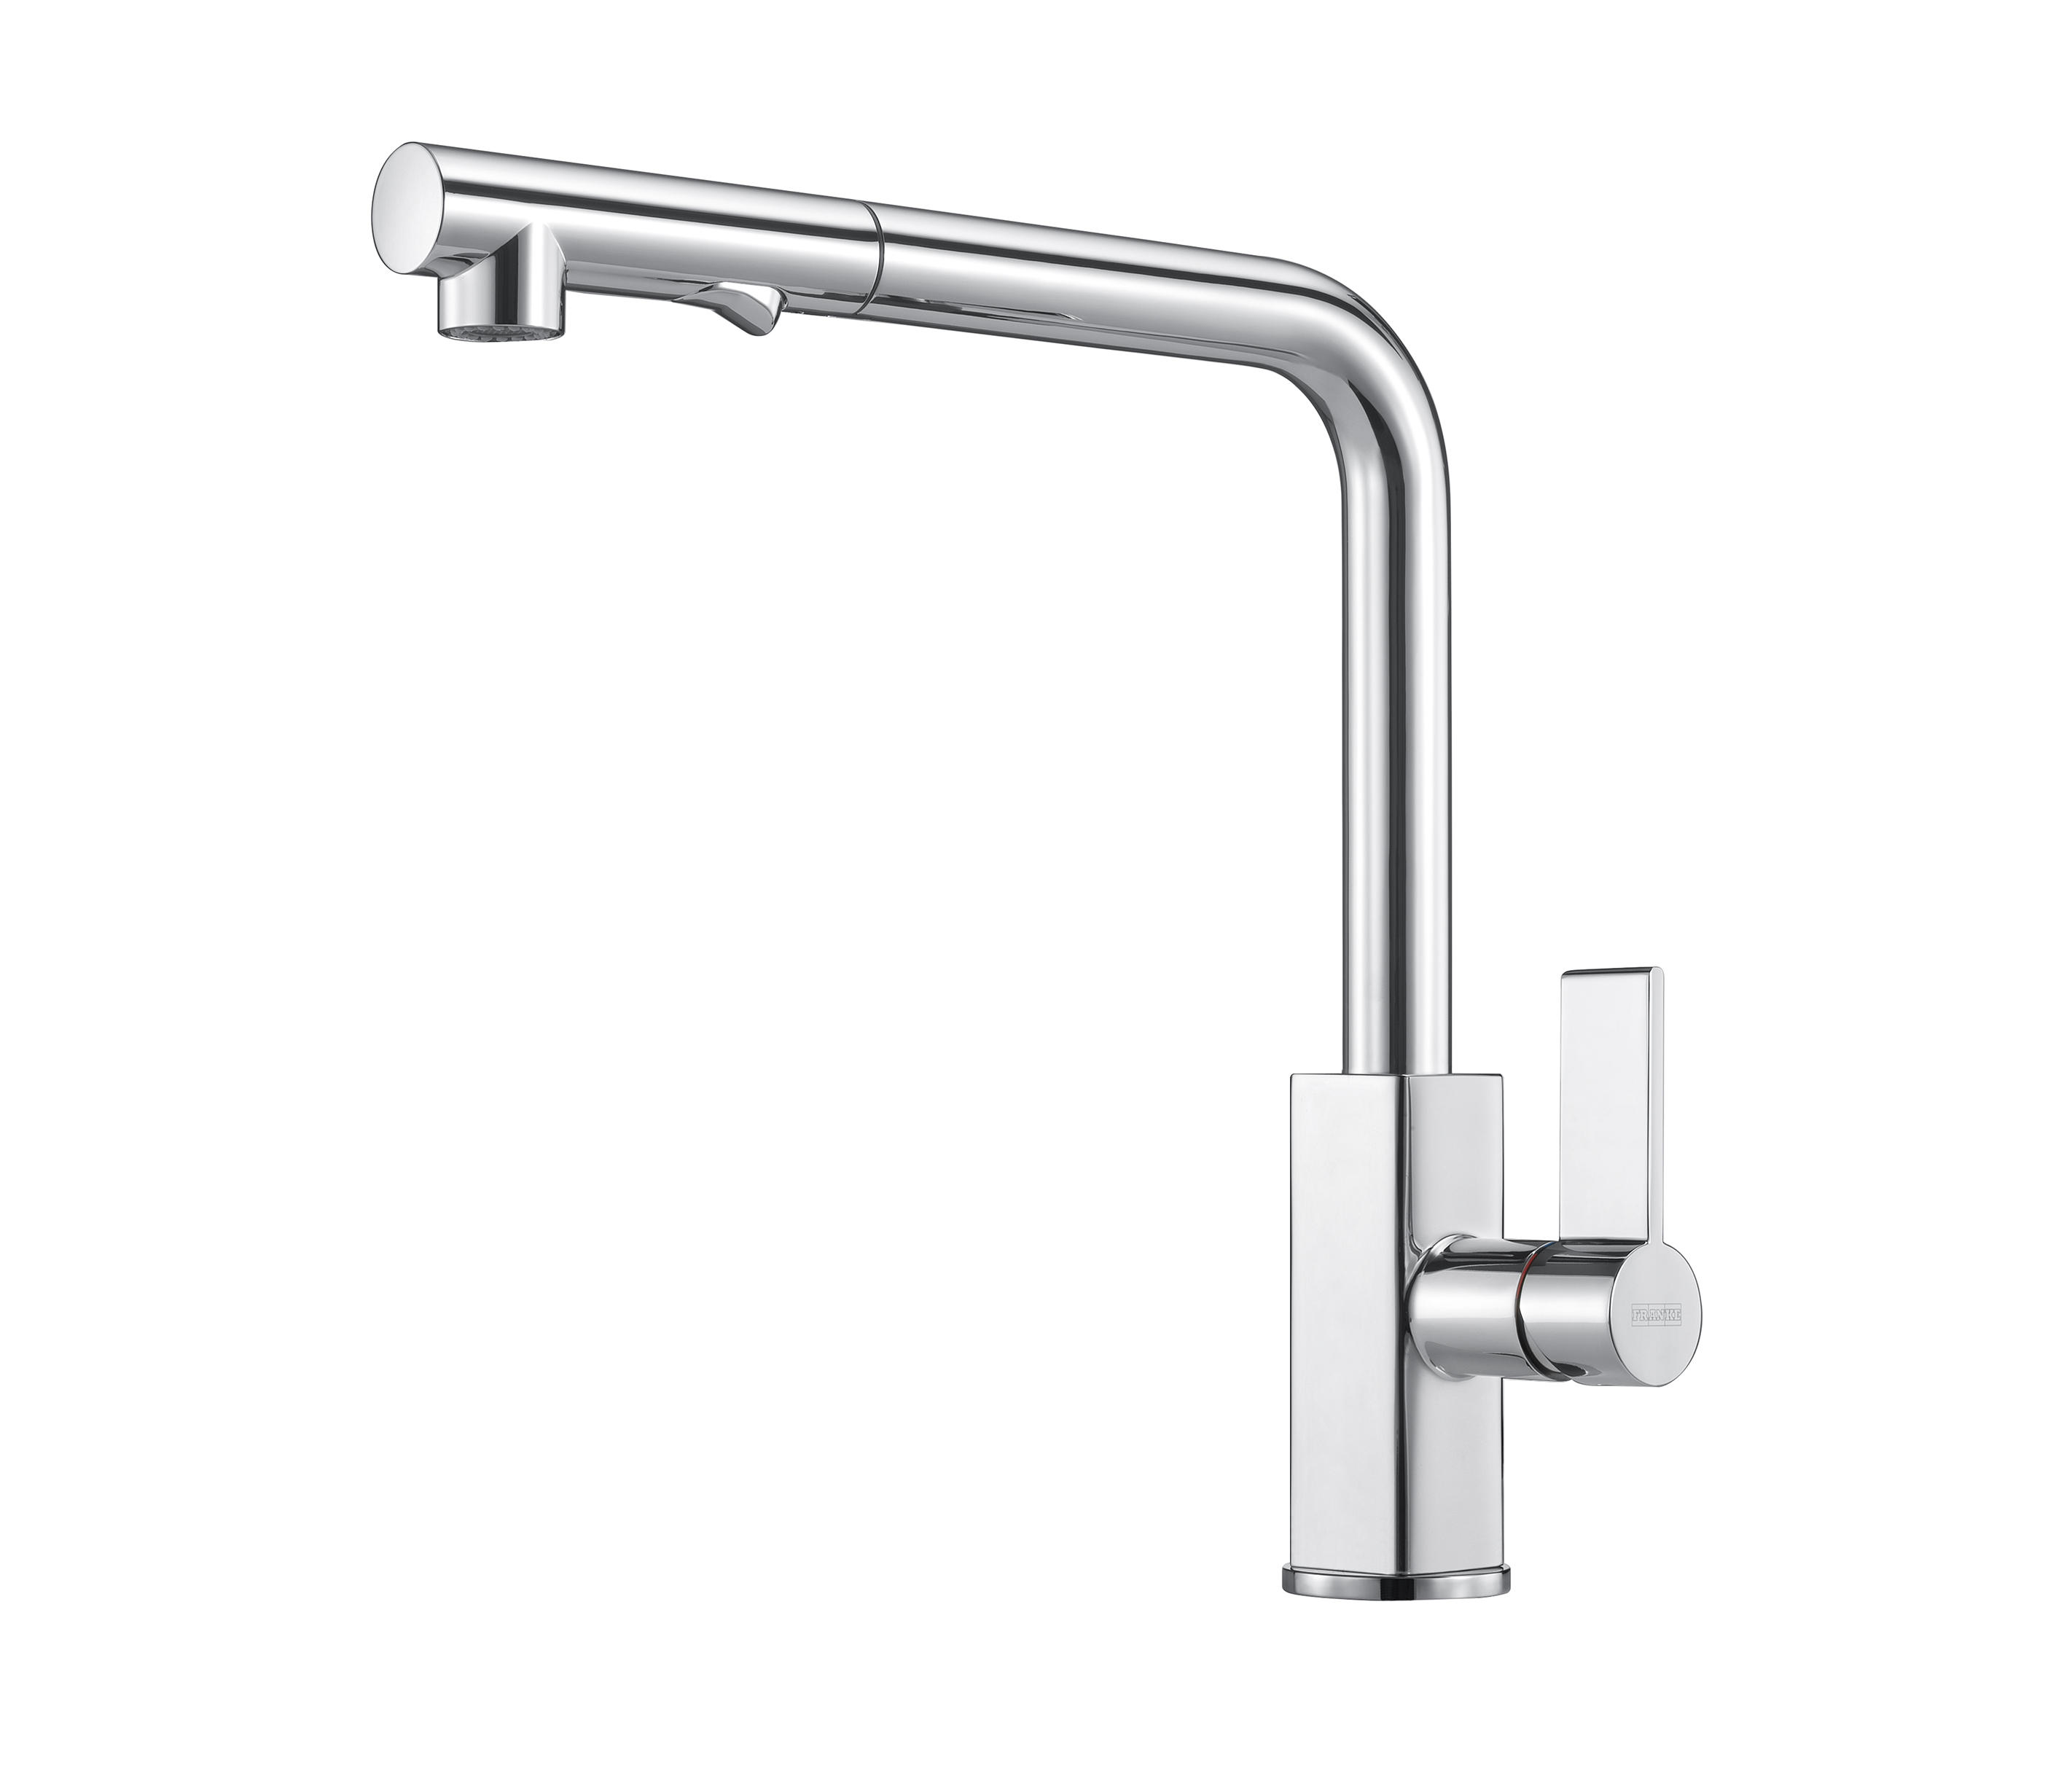 Franke Küchenarmaturen Maris Tap Pull Out L Version Chrome Küchenarmaturen Von Franke